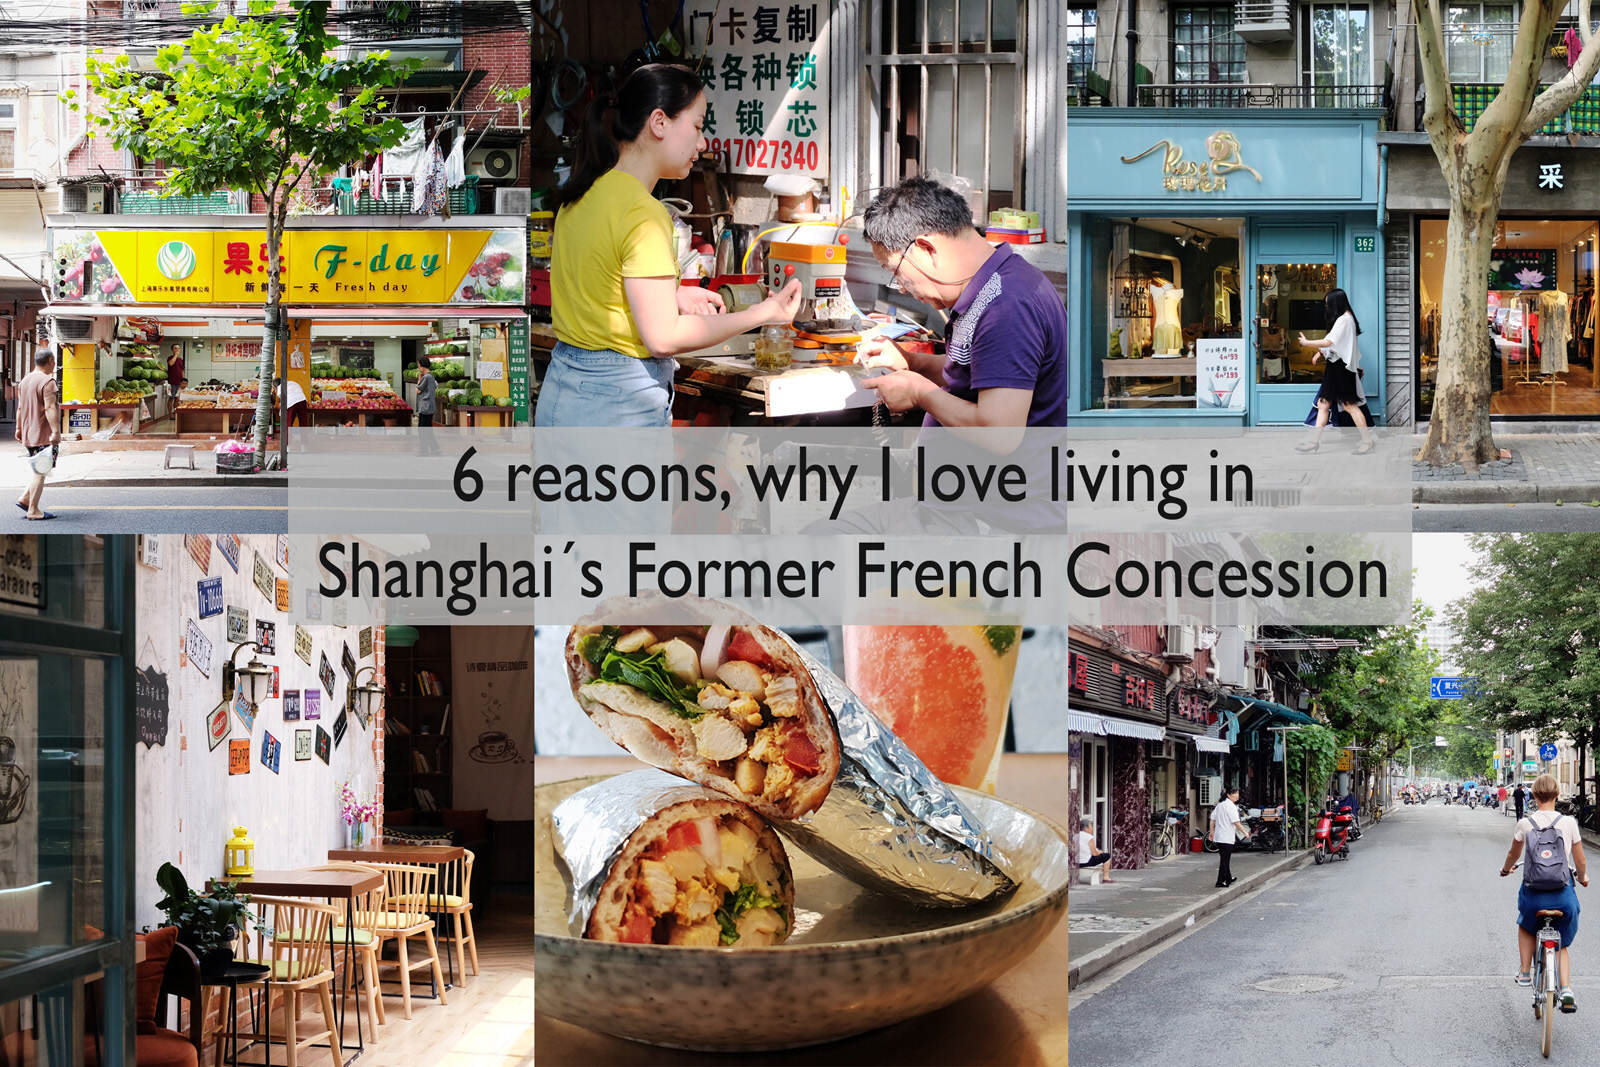 6 reasons why I love living in Shanghai´s Former French Concession